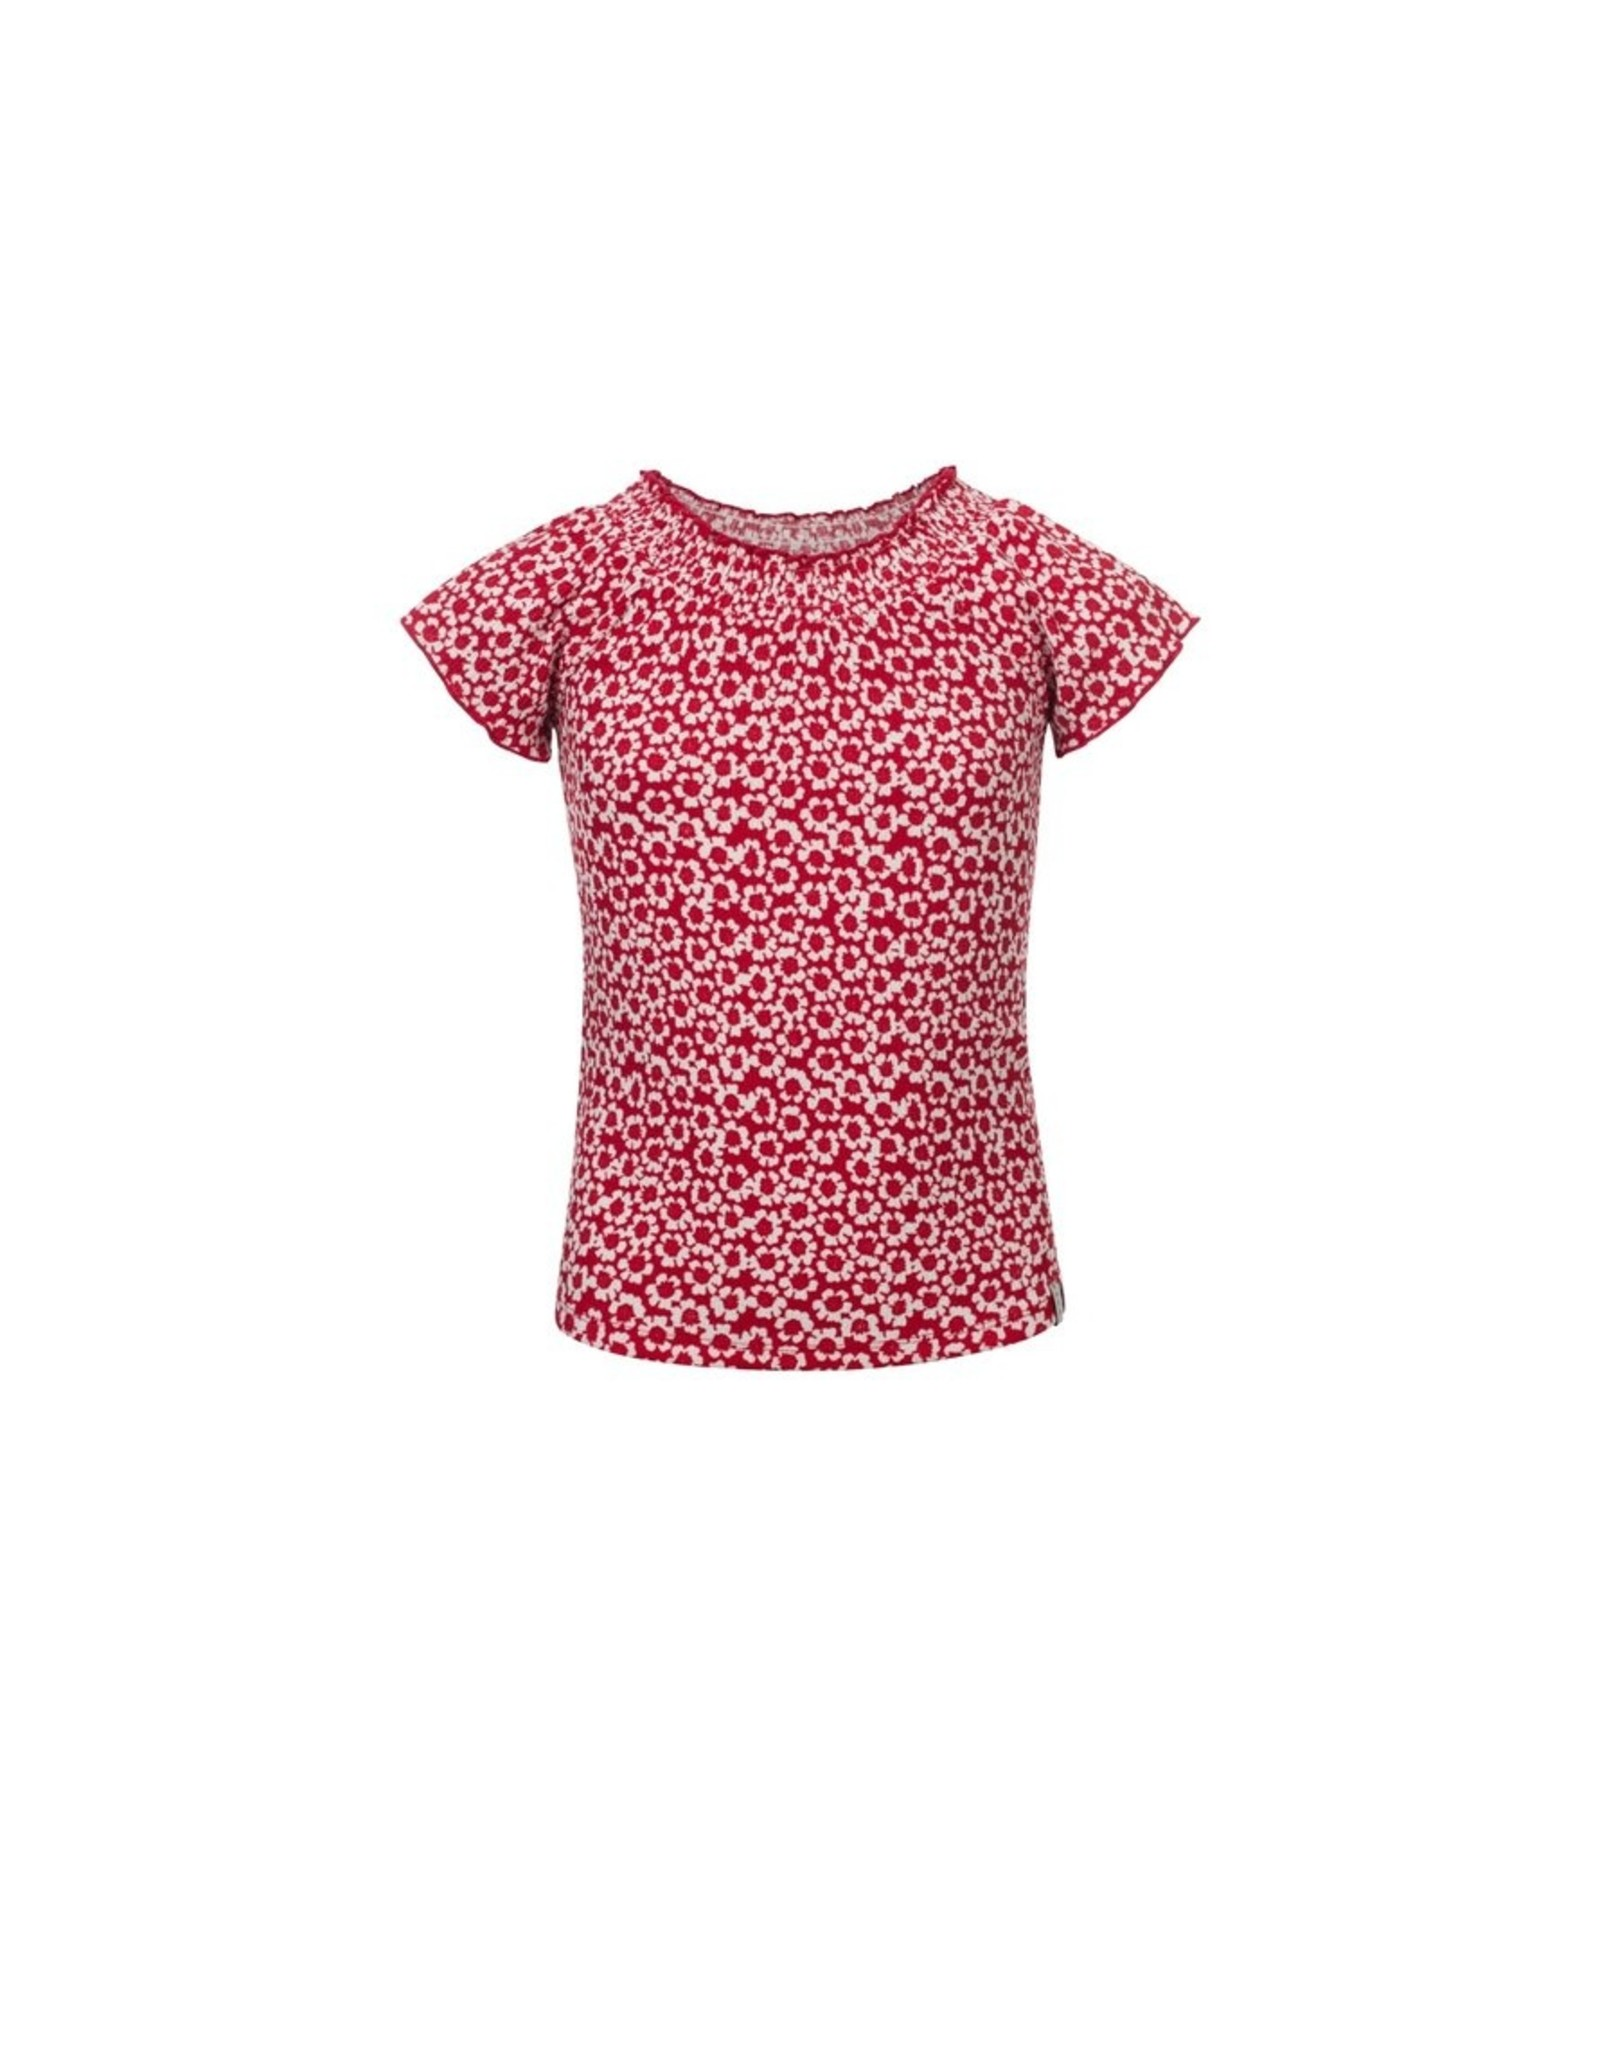 LOOXS Little Little woven top s.sleeve, Floral ao